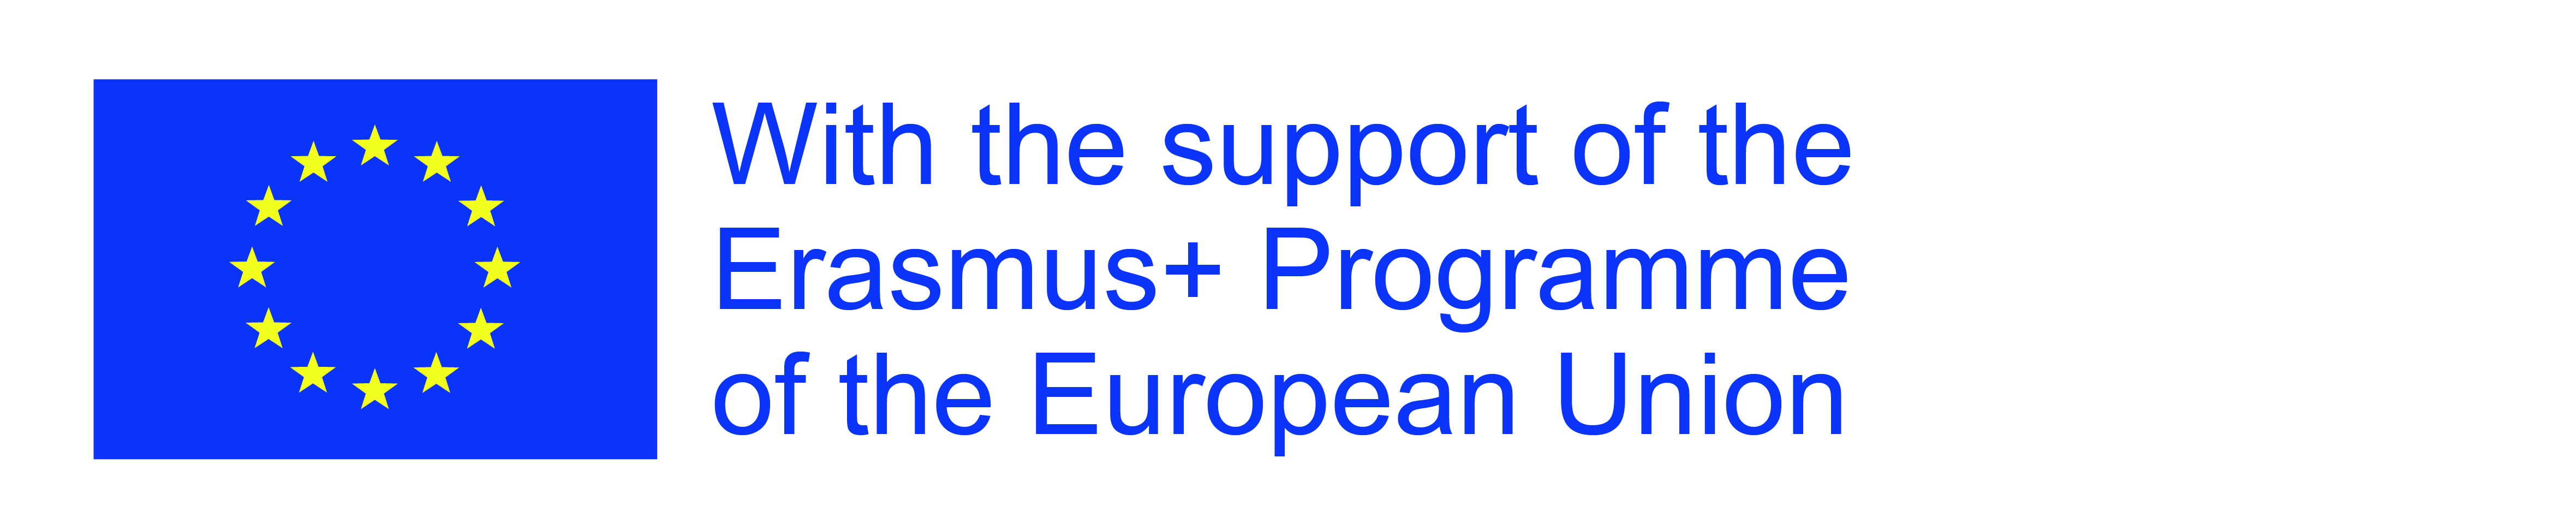 European Quality of Educational Research for Empowering Educators in Ukraine is the Jean Monnet Support to Association Project that has been carried out with the support of Erasmus+ Programme of the European Union